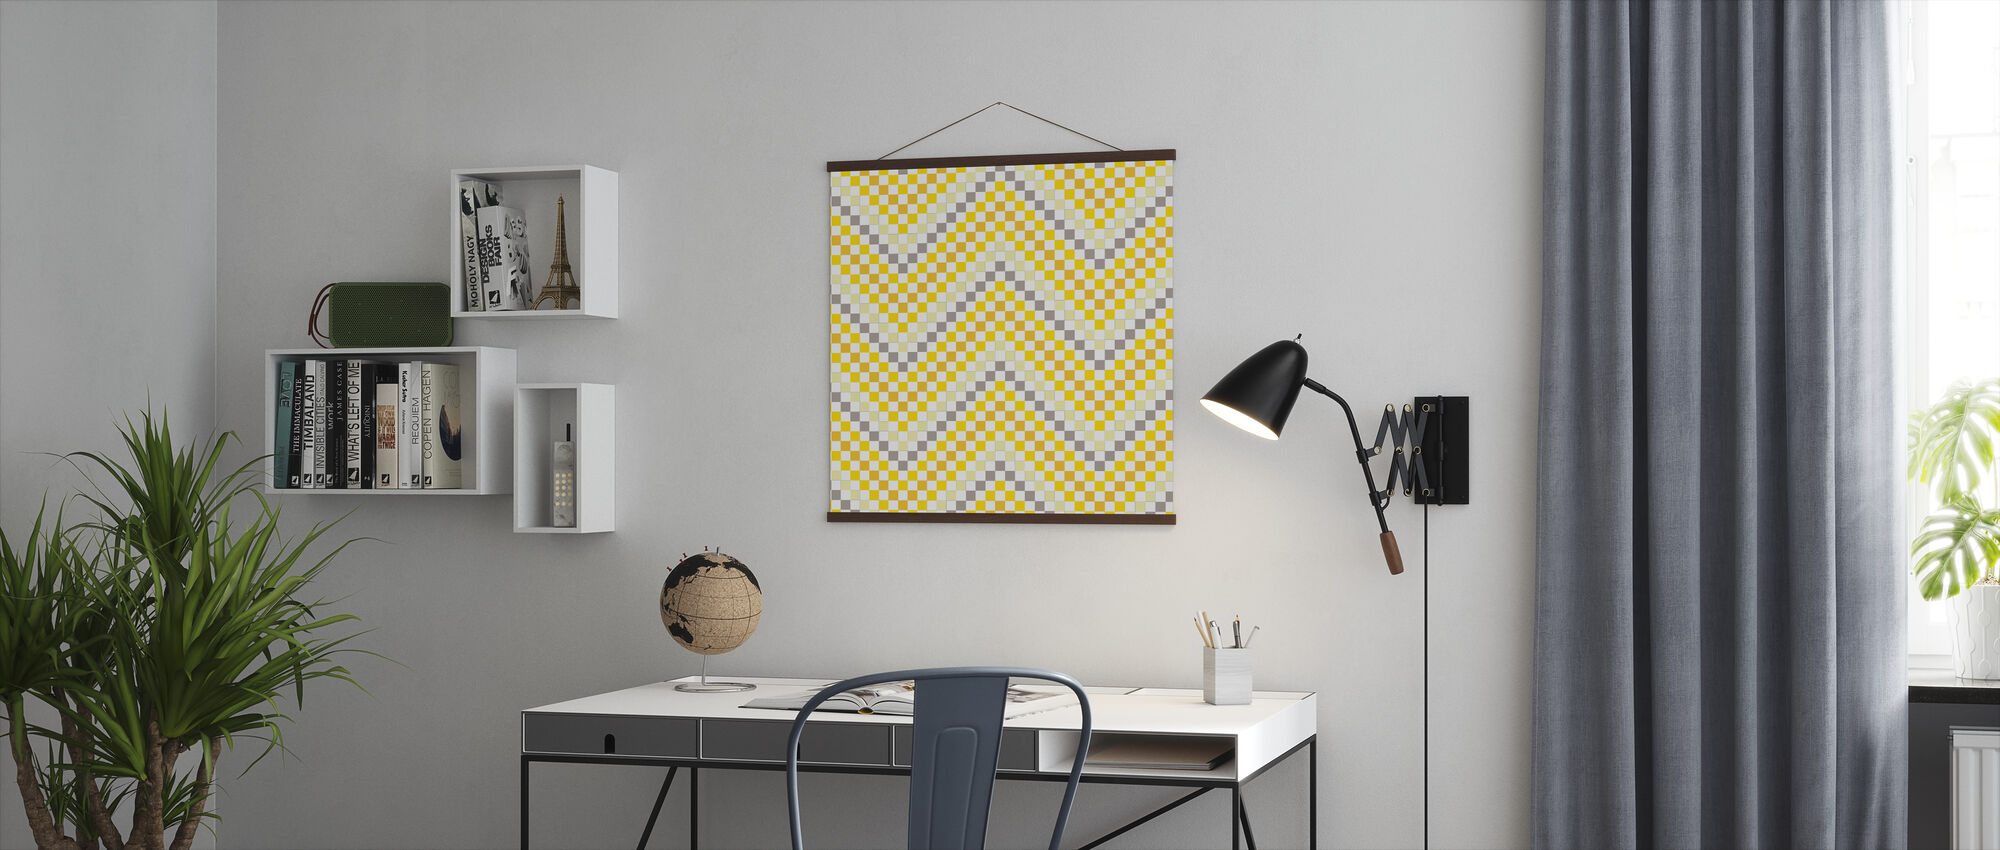 Going Geometric 4 - Poster - Office